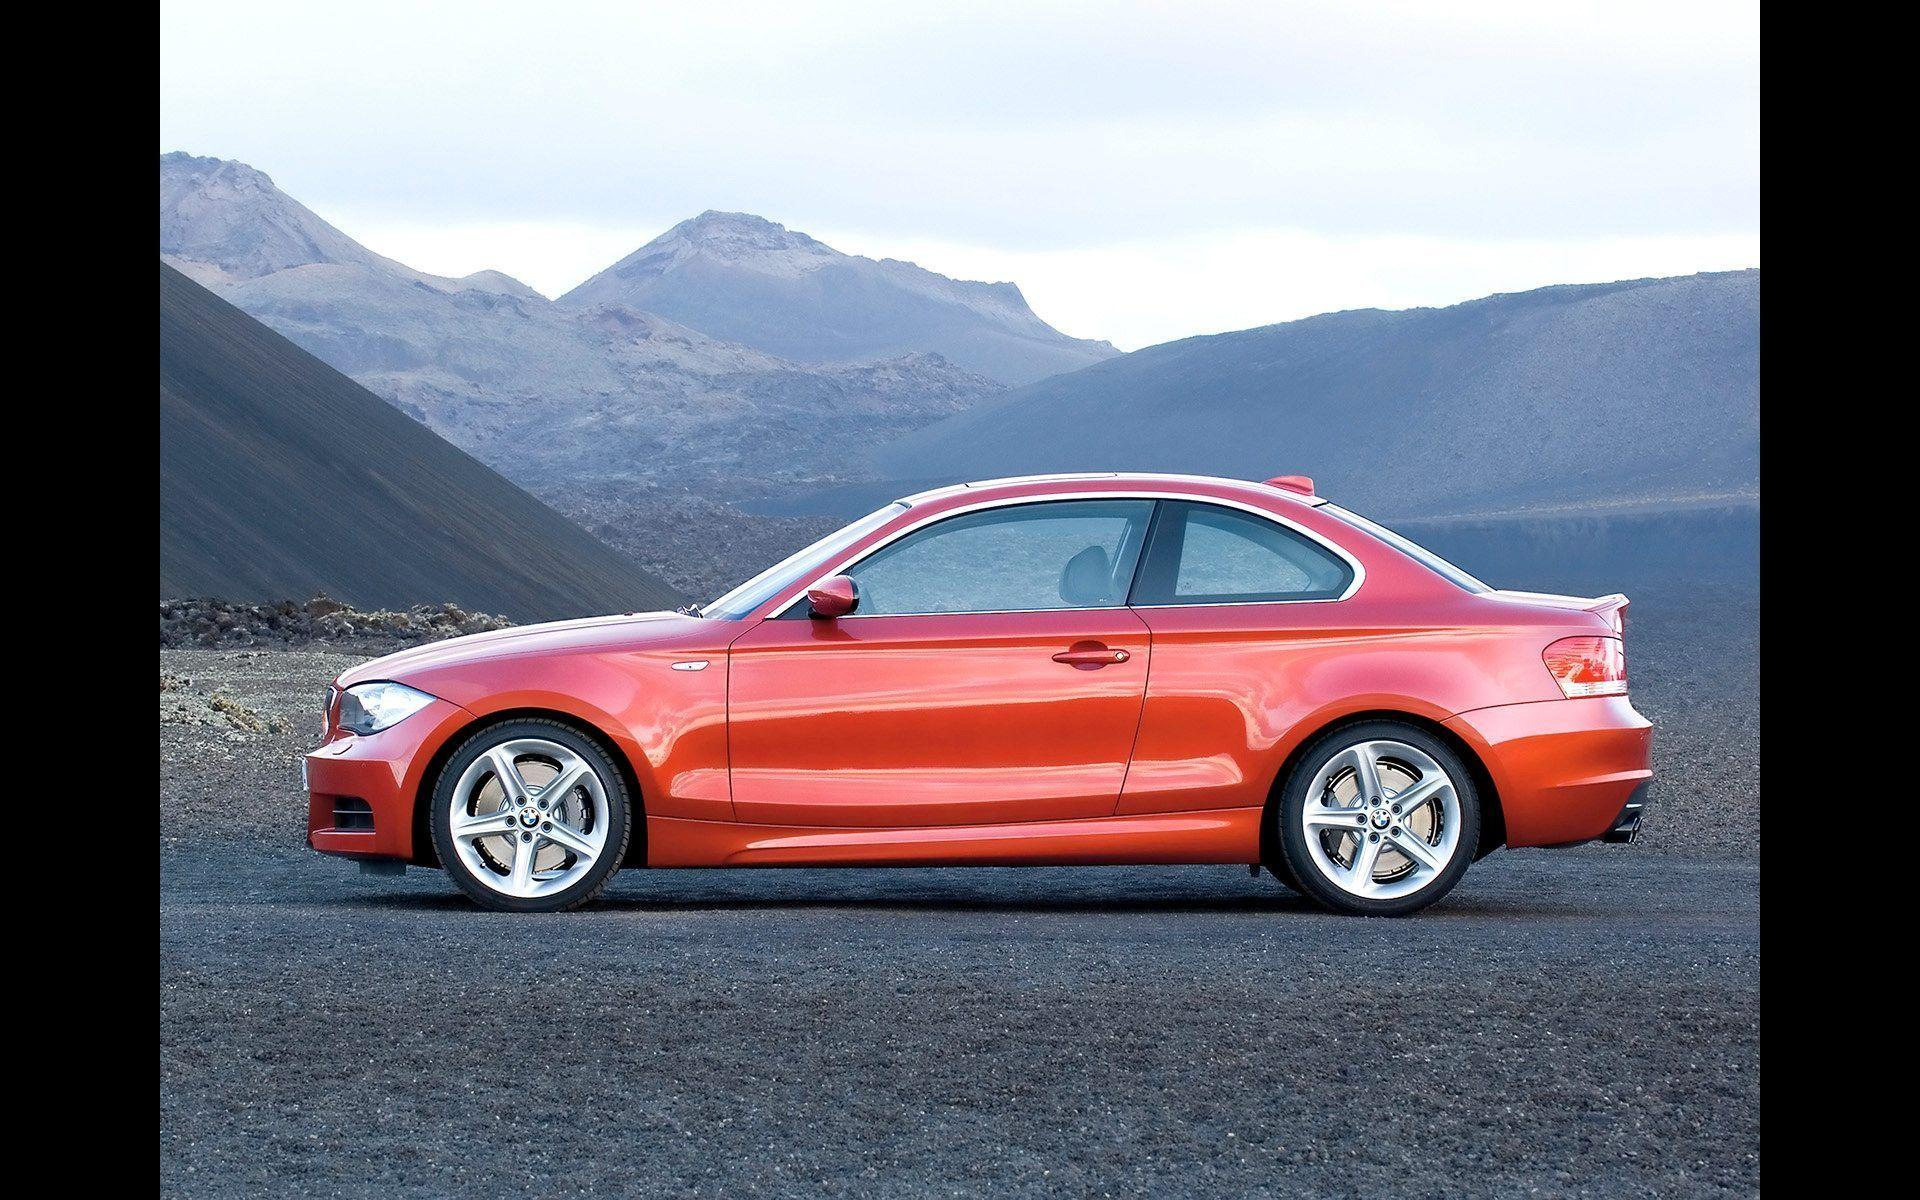 2008 BMW 1 Series Coupe Wallpaper 01 - 1920x1200